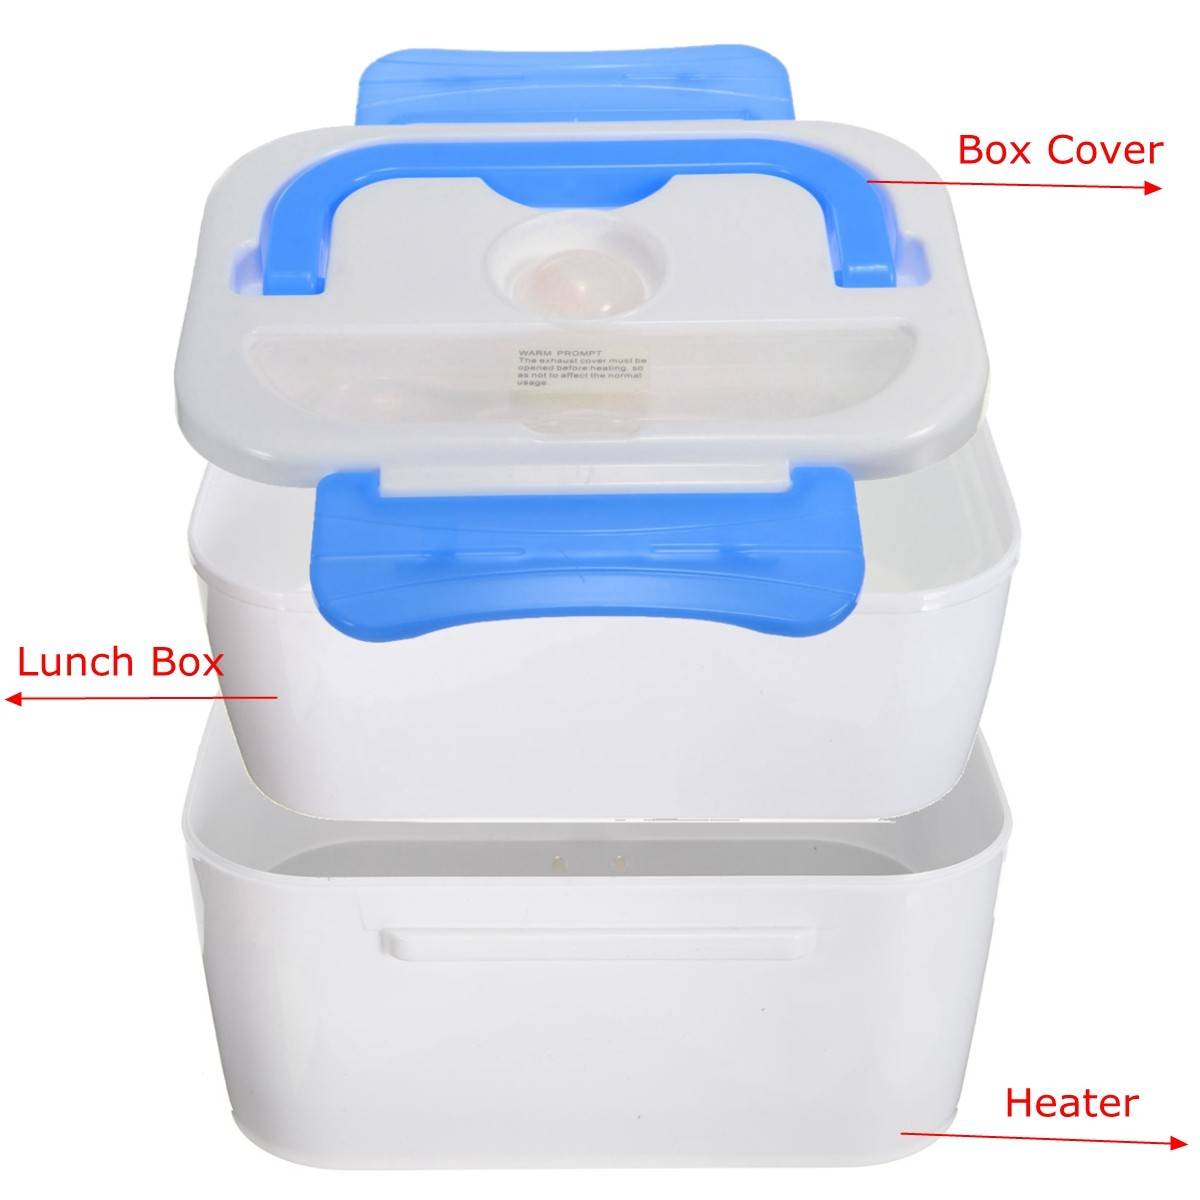 portable electric heated car plug heating lunch box bento box food warmer 12v blue export. Black Bedroom Furniture Sets. Home Design Ideas